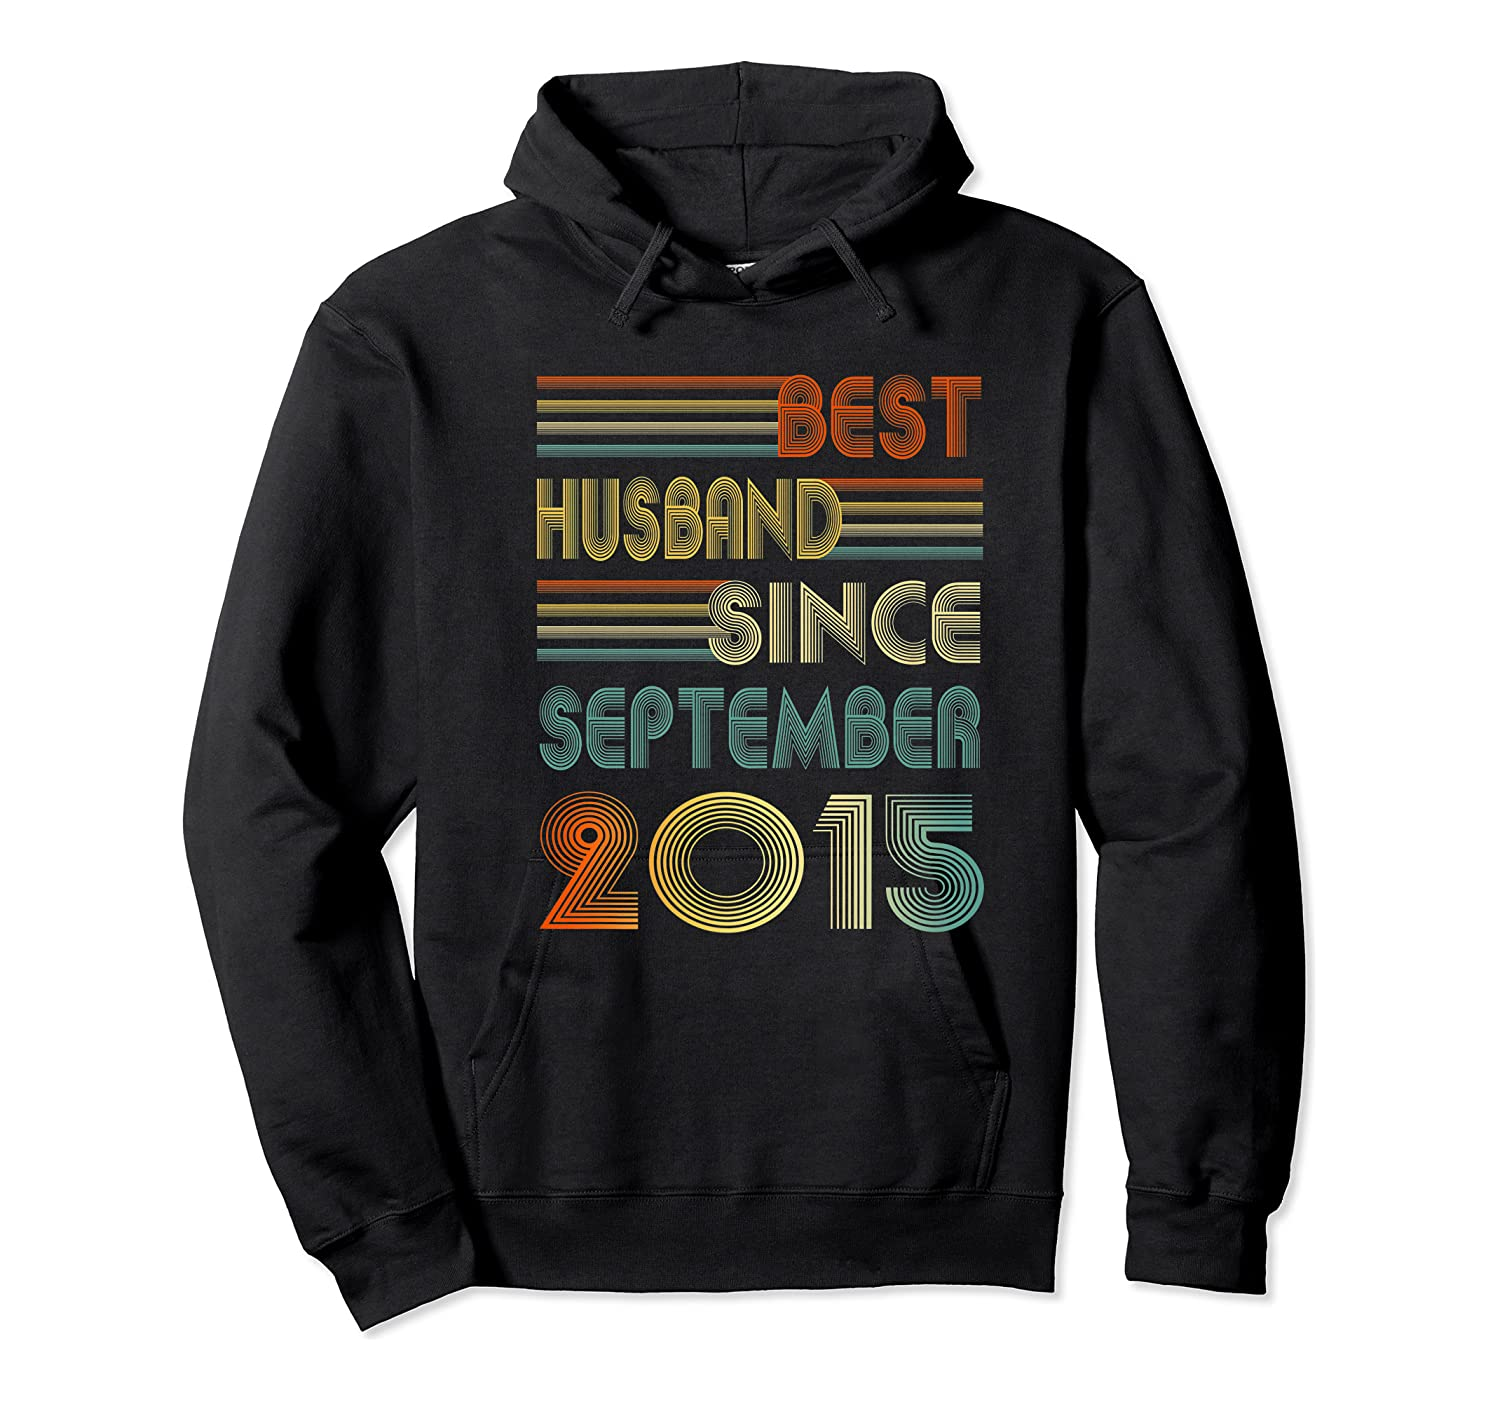 5th Wedding Anniversary Gift Husband Since September 2015 Shirts Unisex Pullover Hoodie